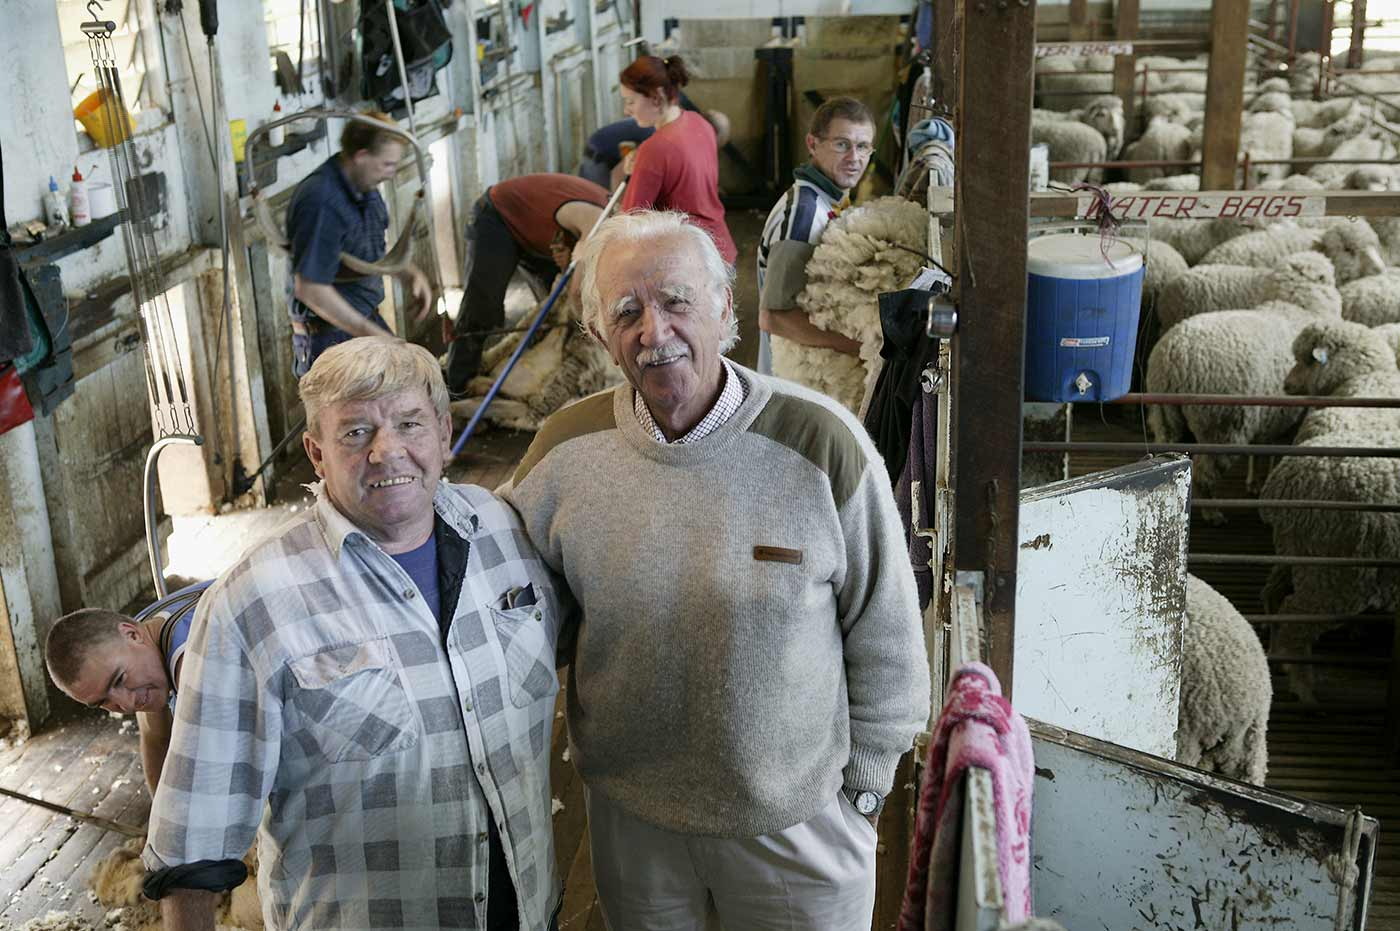 Jim Maple-Brown and local shearing contractor 'Bluey' Thompson posing together in a shearing shed. - click to view larger image